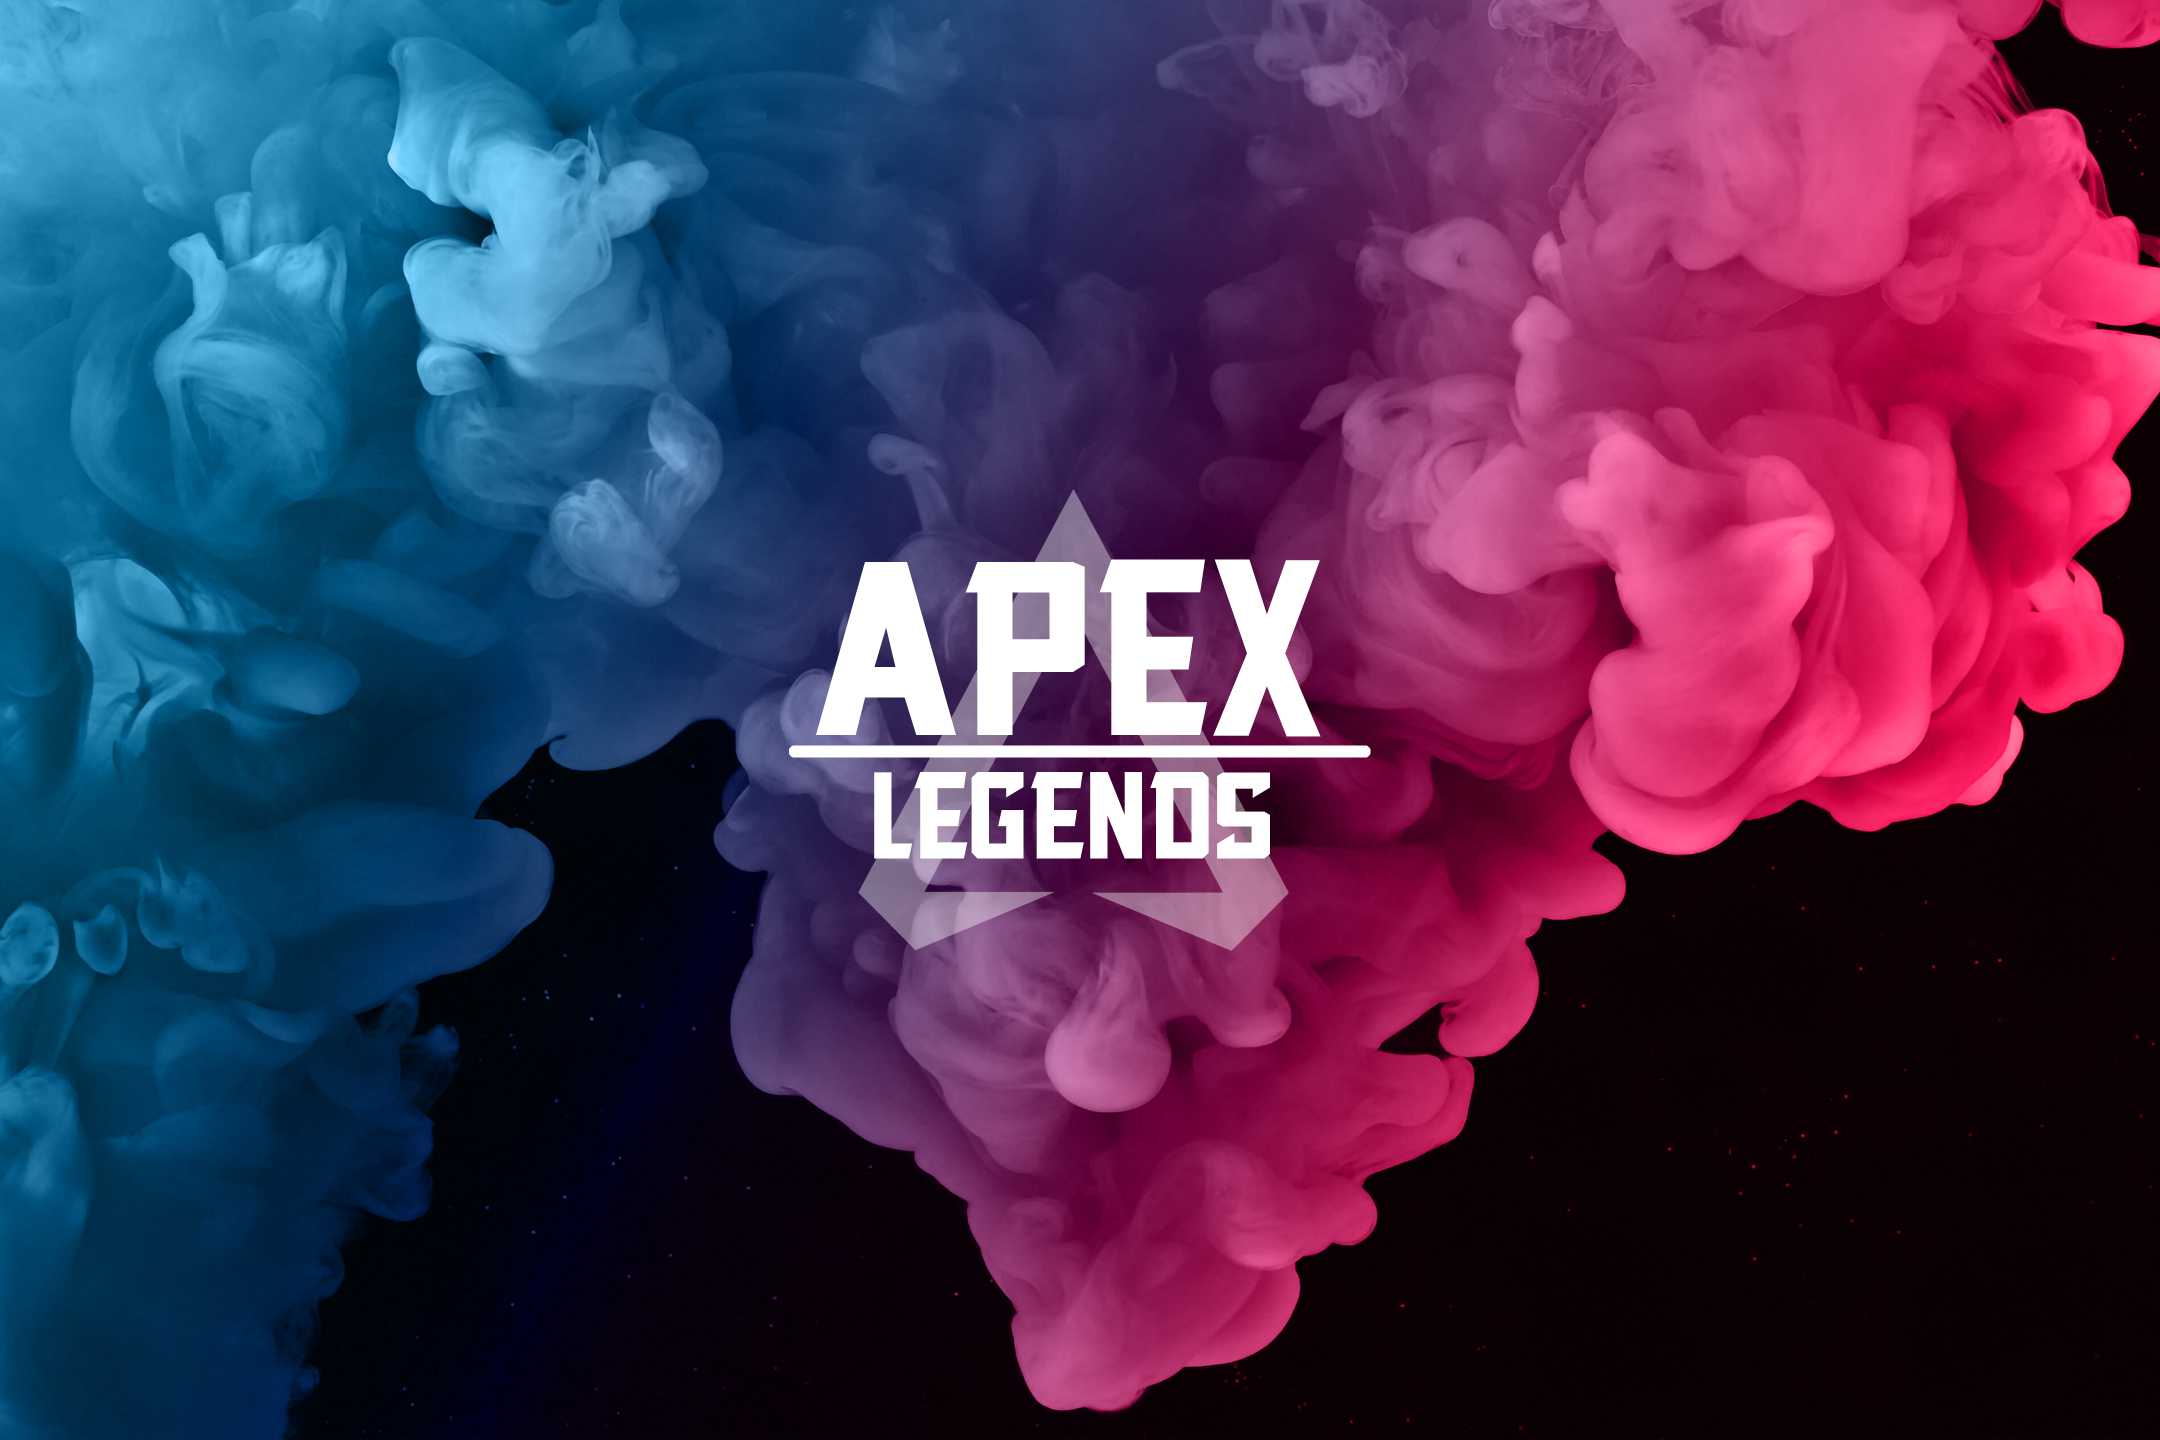 I Need An Apex Wallpaper Hd Preferably For The Iphone Legends